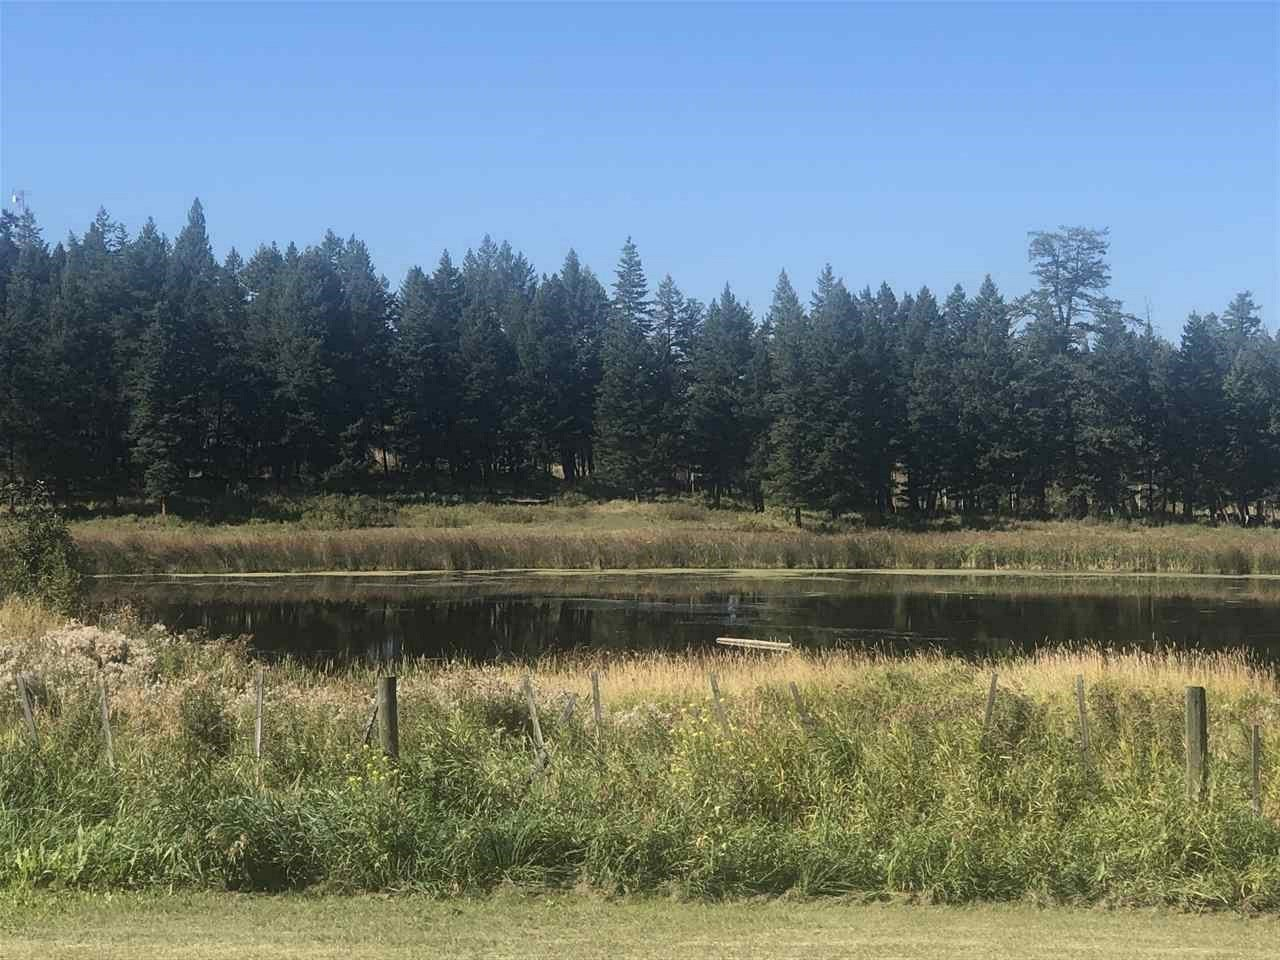 Photo 6: Photos: 3090 150 MILE FRONTAGE Road: 150 Mile House Land Commercial for sale (Williams Lake (Zone 27))  : MLS®# C8034187